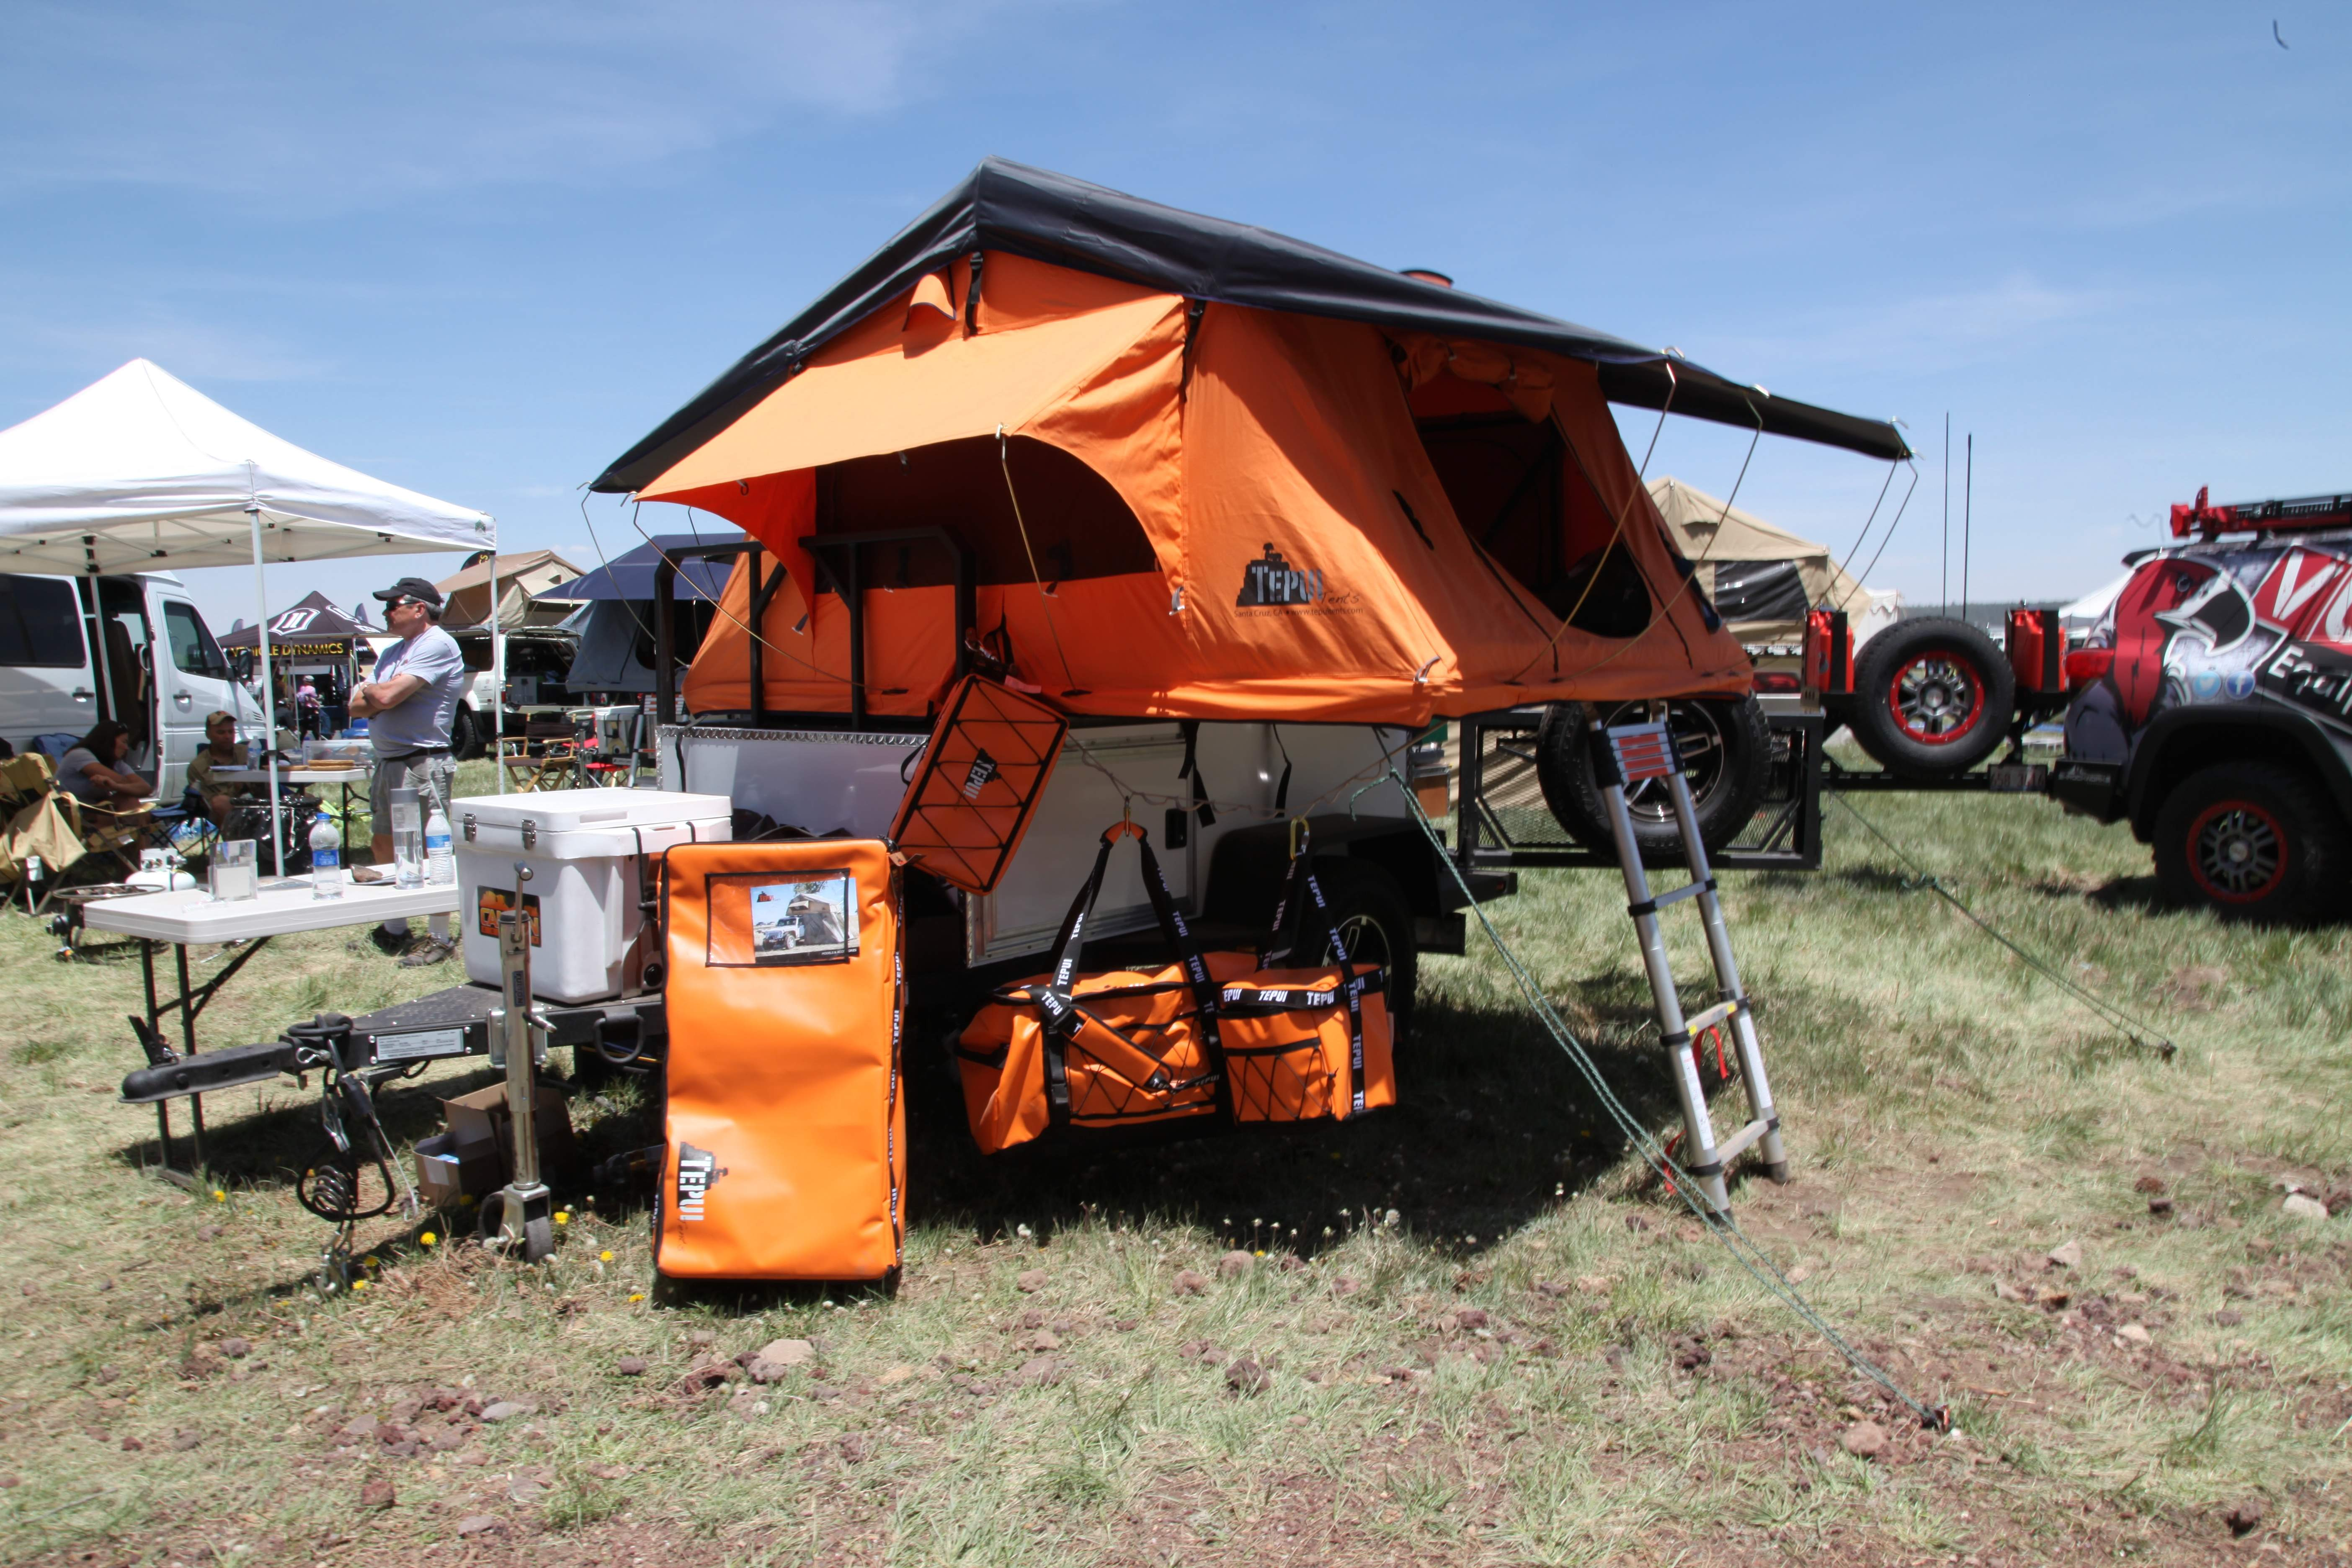 Some also require a significant amount of physical effort to deploy. Chose your RTT carefully and it can best the set up ease of any ground tent. & Head to Head: Roof Top or Ground Tent u2013 Expedition Portal